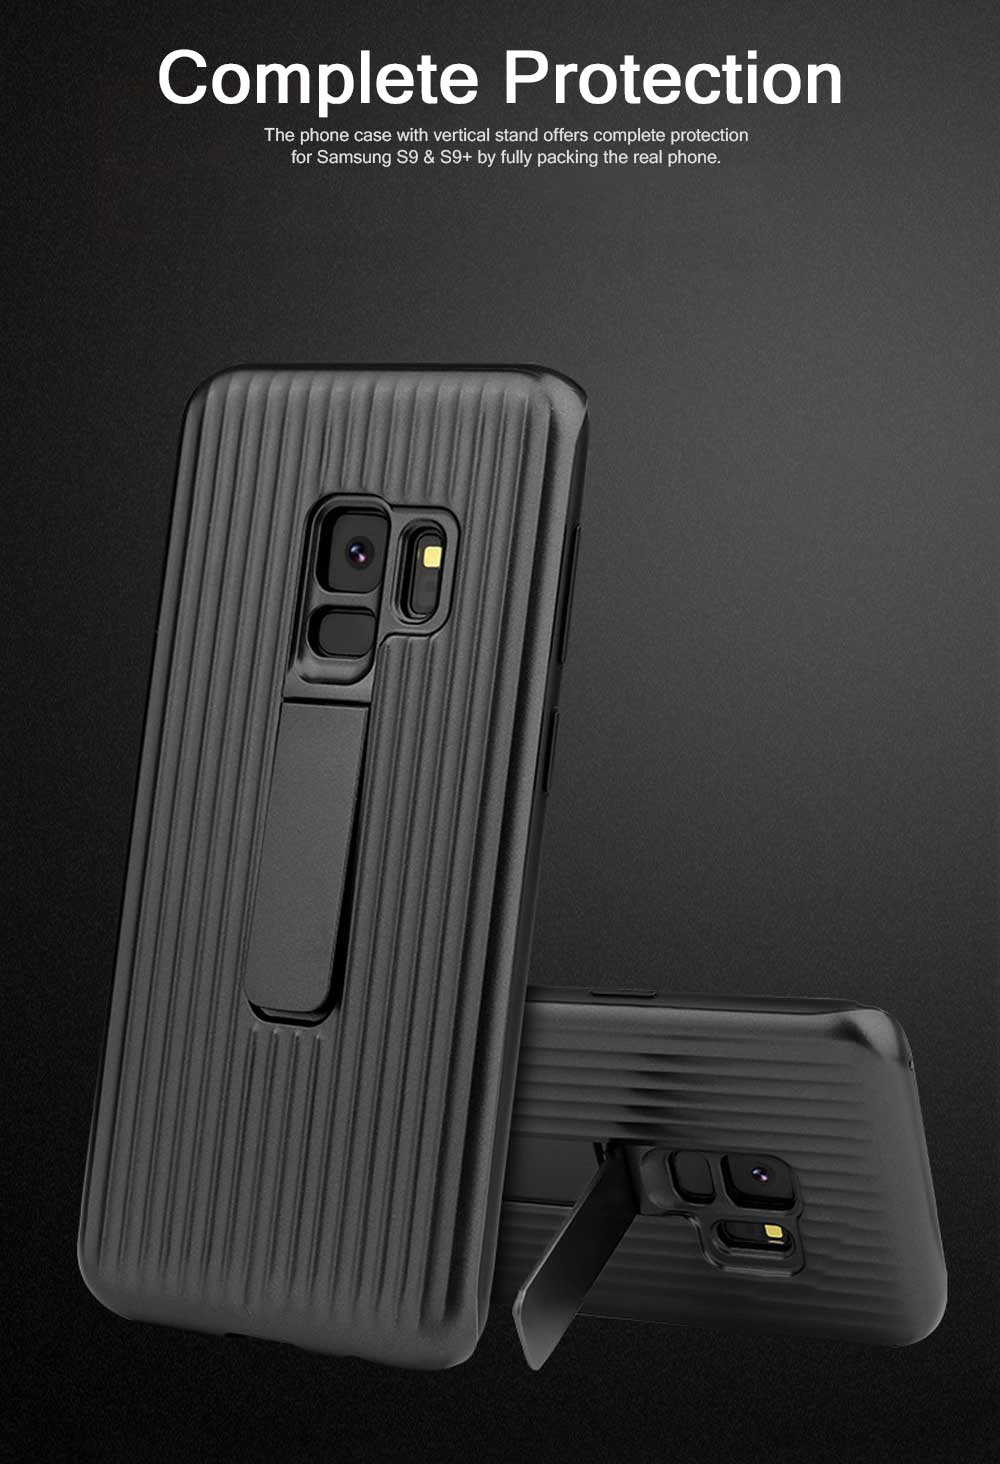 New-style Samsung Phone Case for Galaxy S9 & S9 Plus Vehicle-Mounted Protective Case Vertical Support Phone Case 1